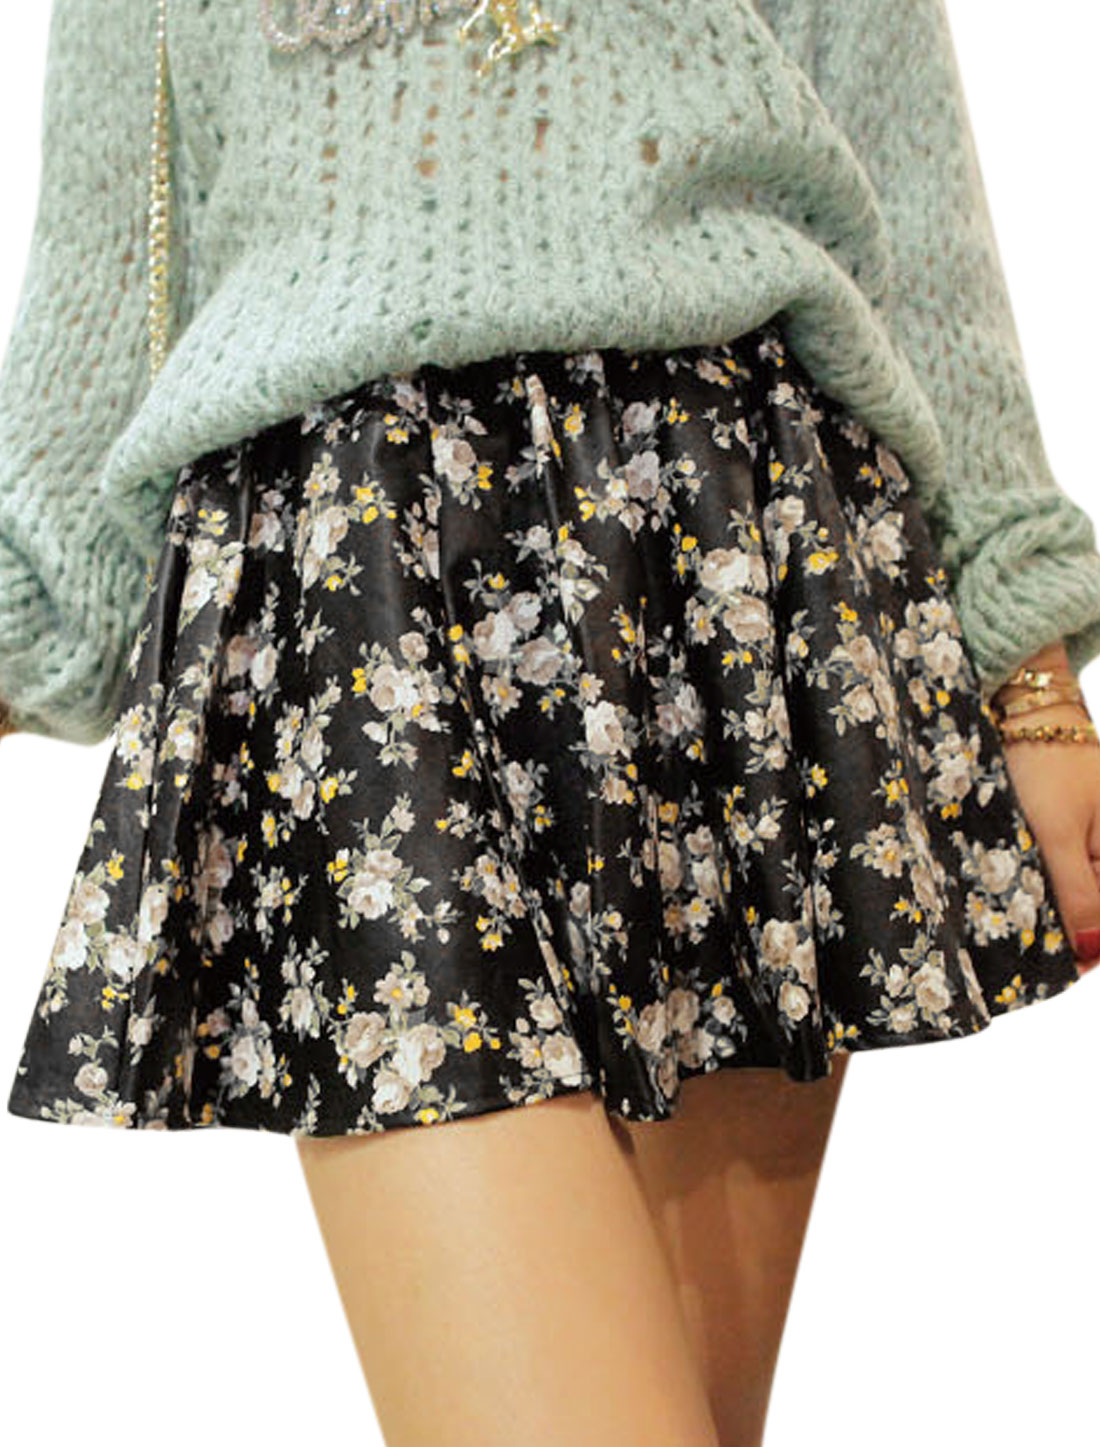 Women Floral Prints Elastic Waist Lined Imitation Leather Skirt Black S